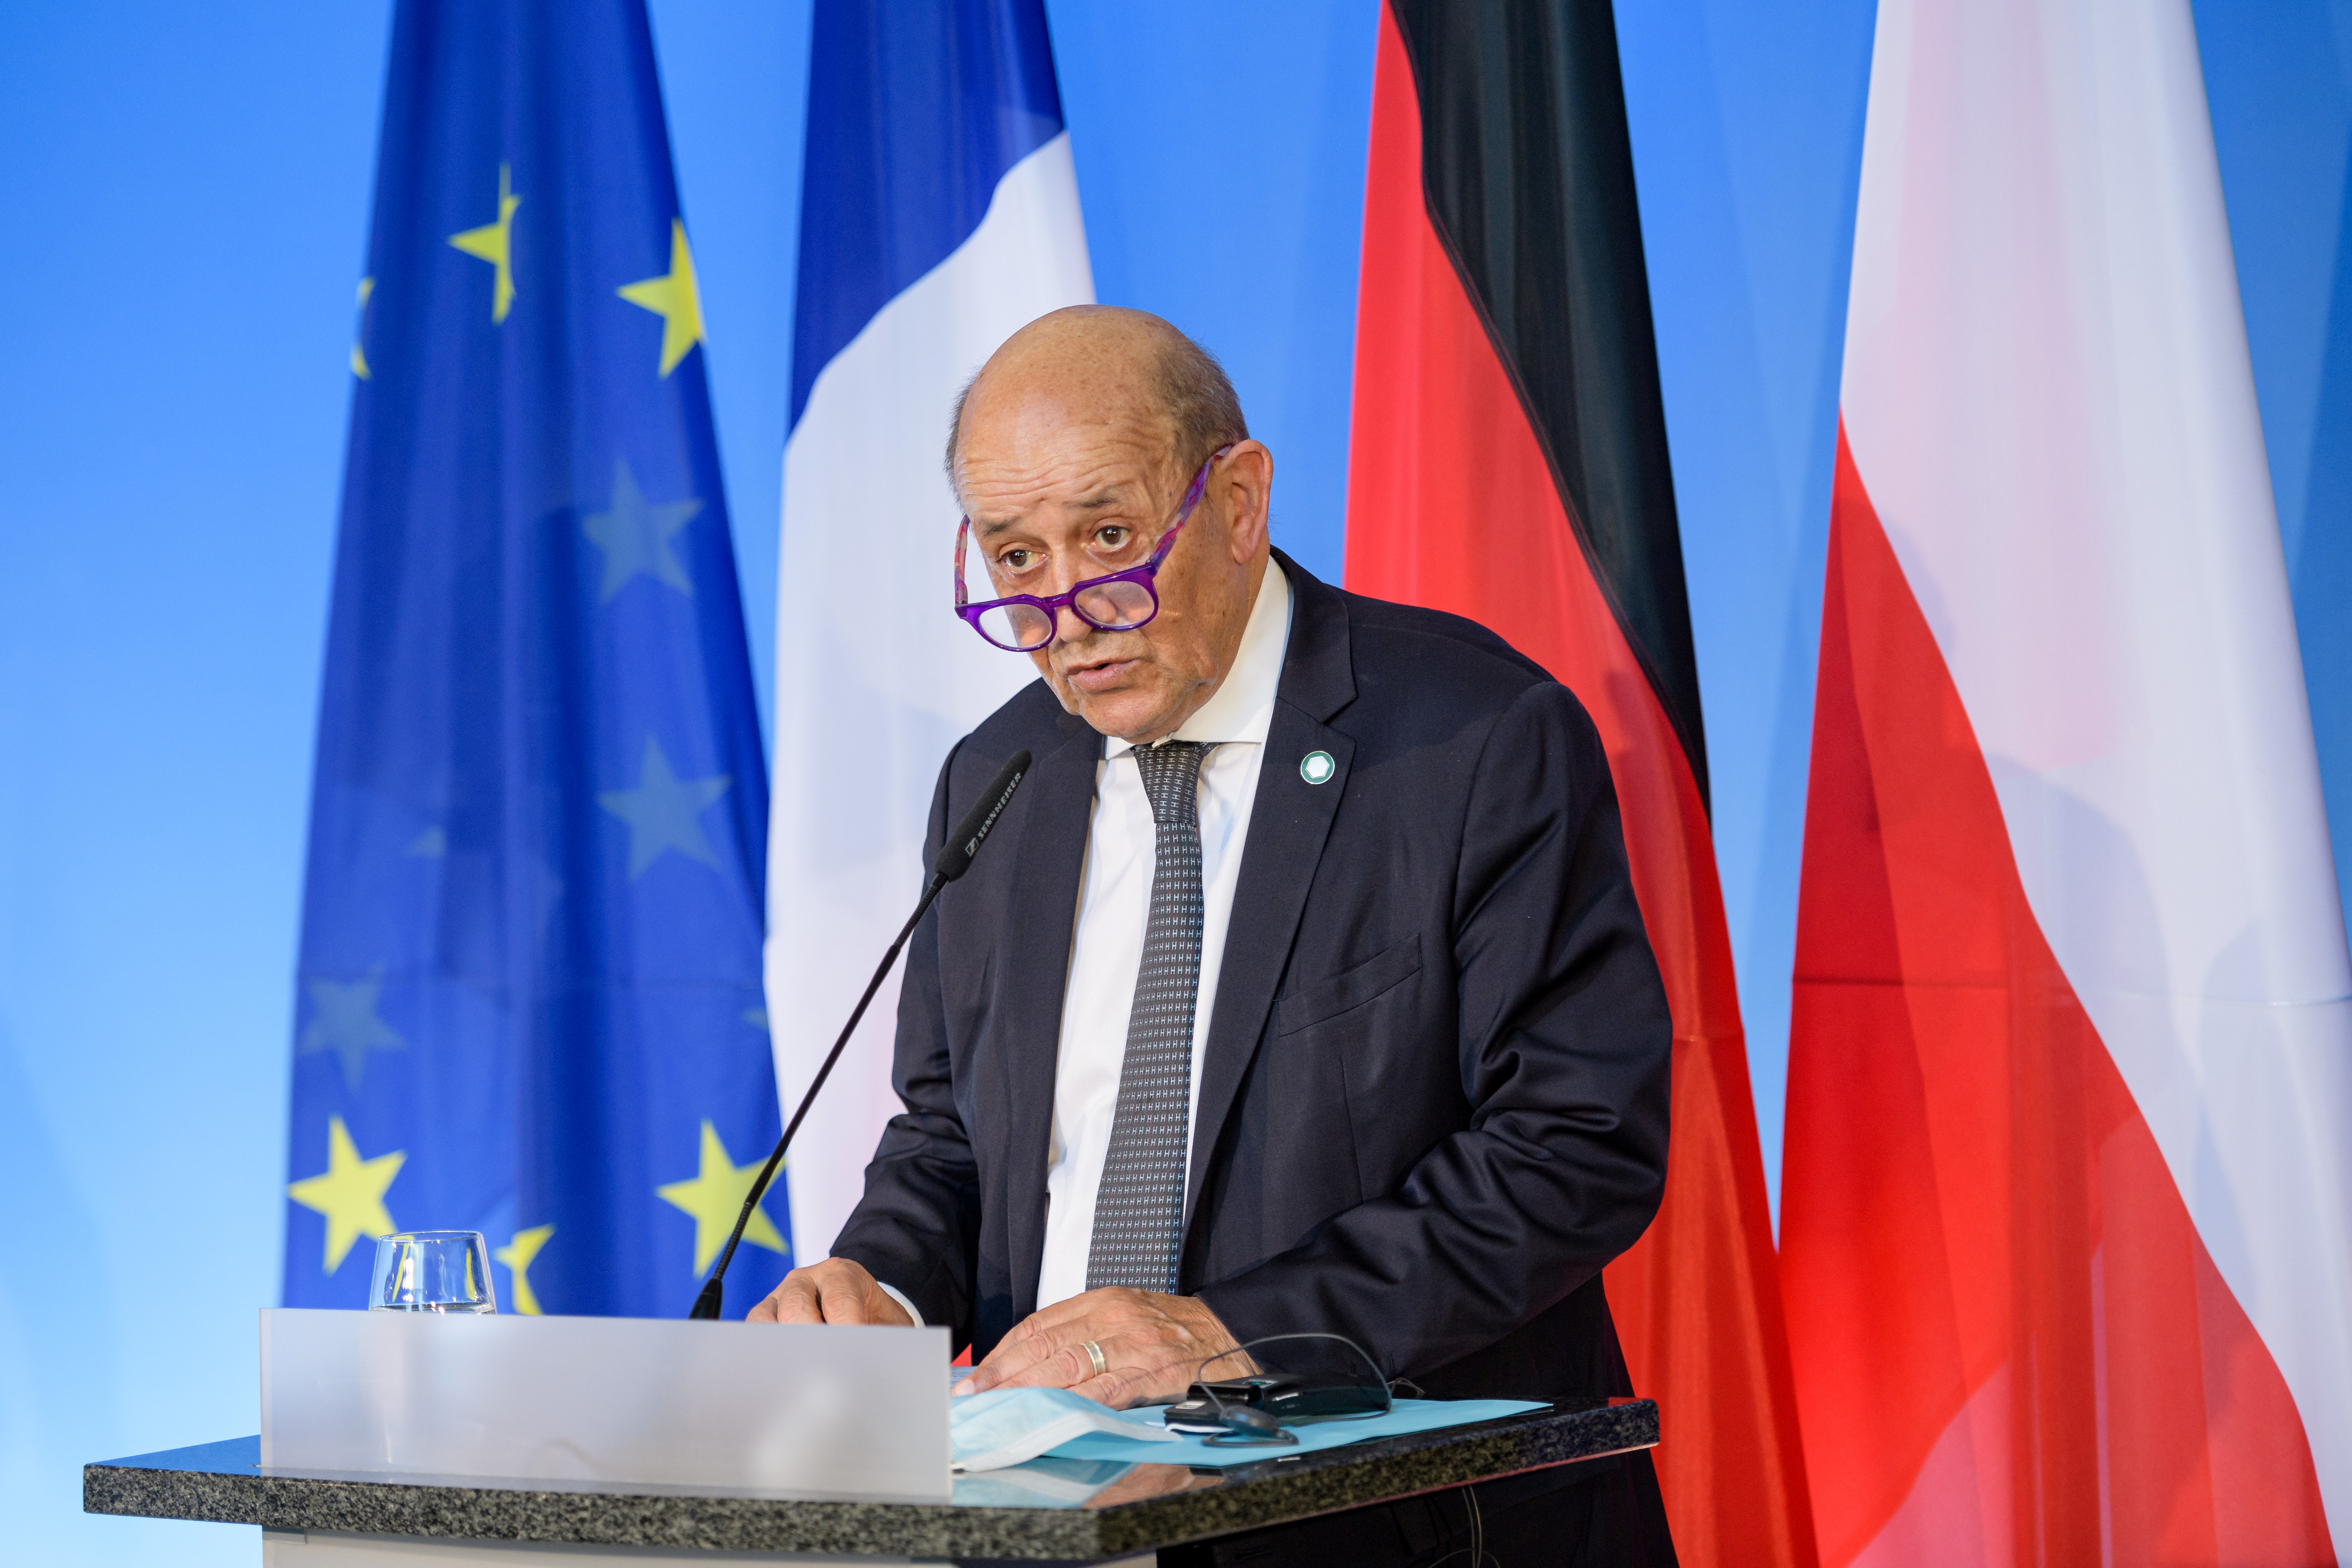 French Foreign Minister Jean-Yves Le Drian attends a joint news conference at the Bauhaus University in Weimar, Germany September 10, 2021.  Jens Schlueter/Pool via REUTERS